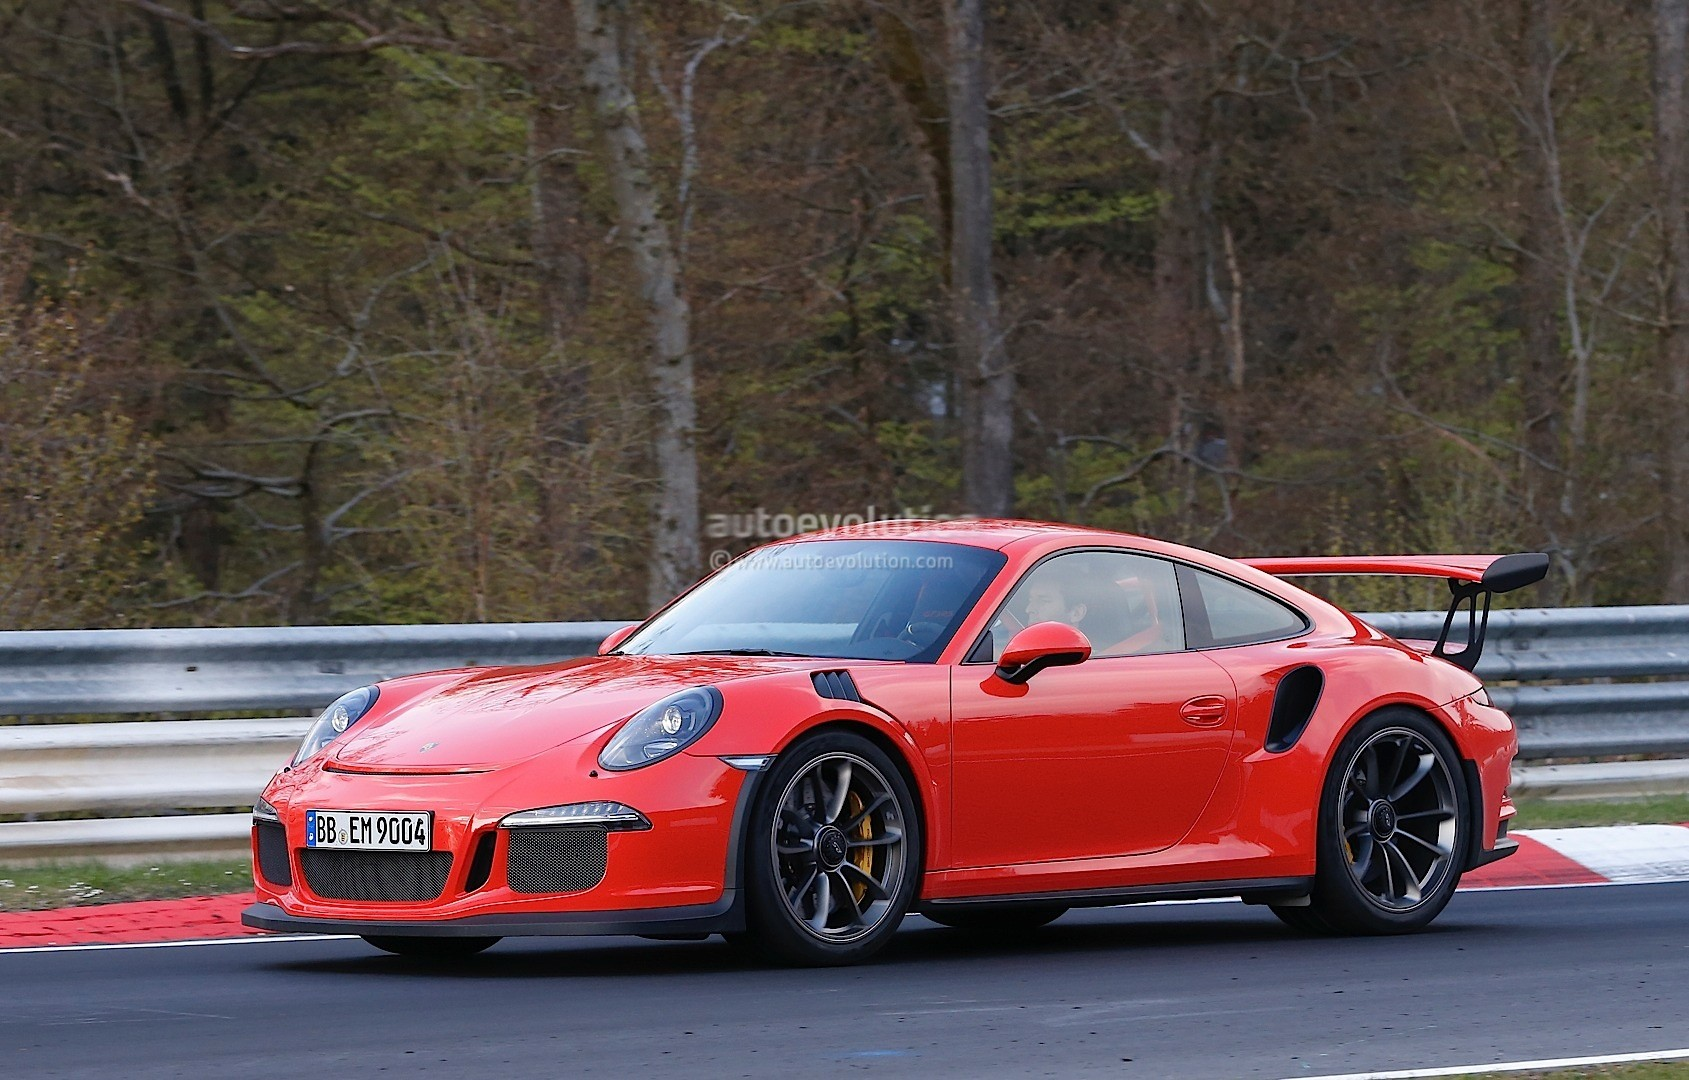 Beautiful Mark Webber Drives The 2016 Porsche 911 GT3 RS On The Nurburgring No